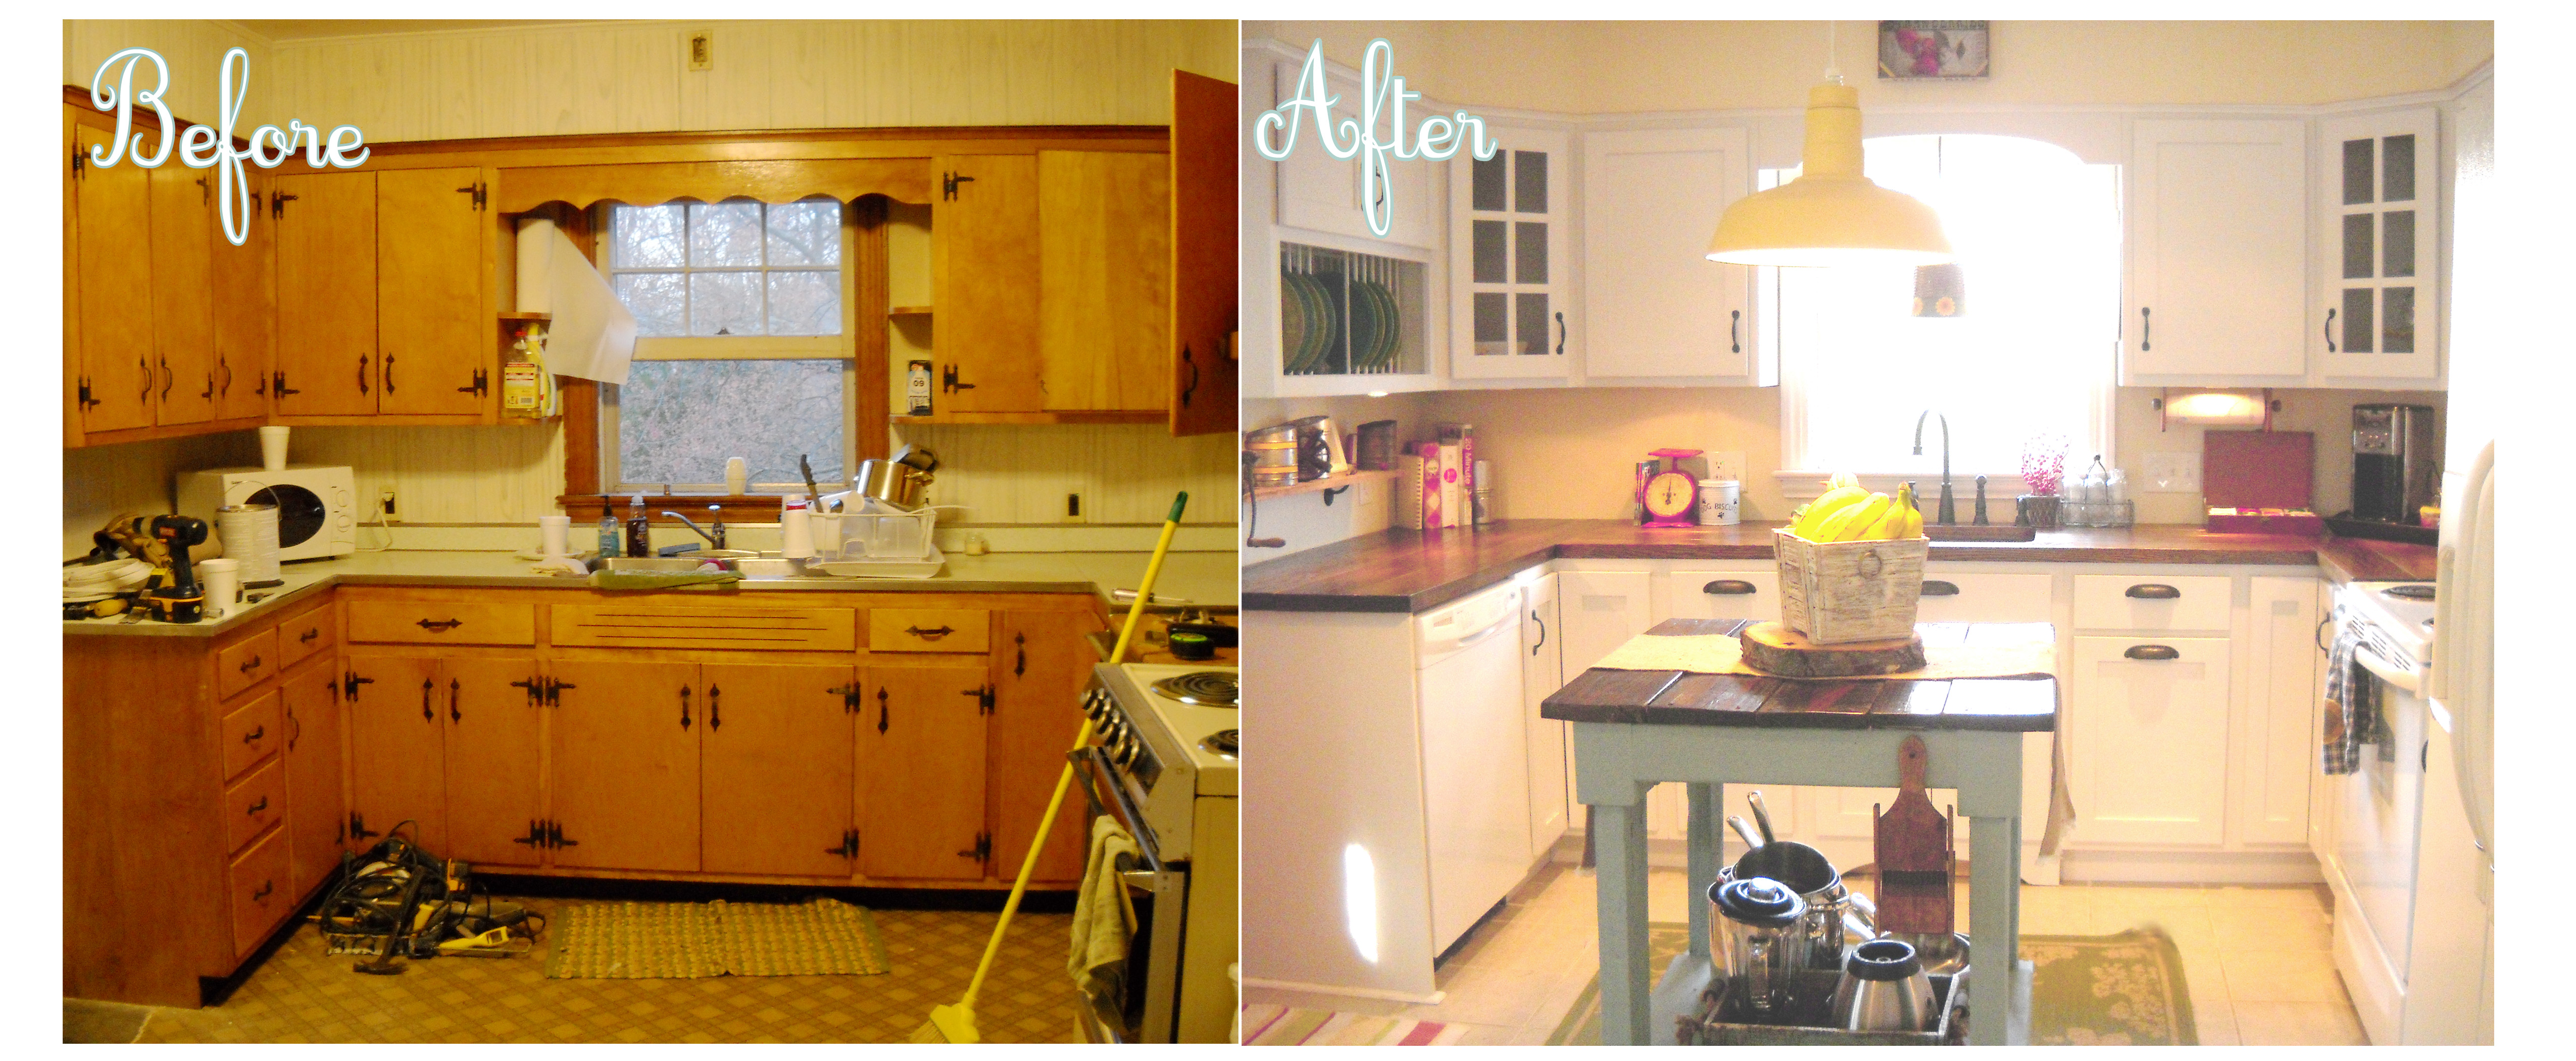 kitchen renovations before and after with white cabinets and wooden countertop and sink combined with table - Small Kitchen Remodel Before And After